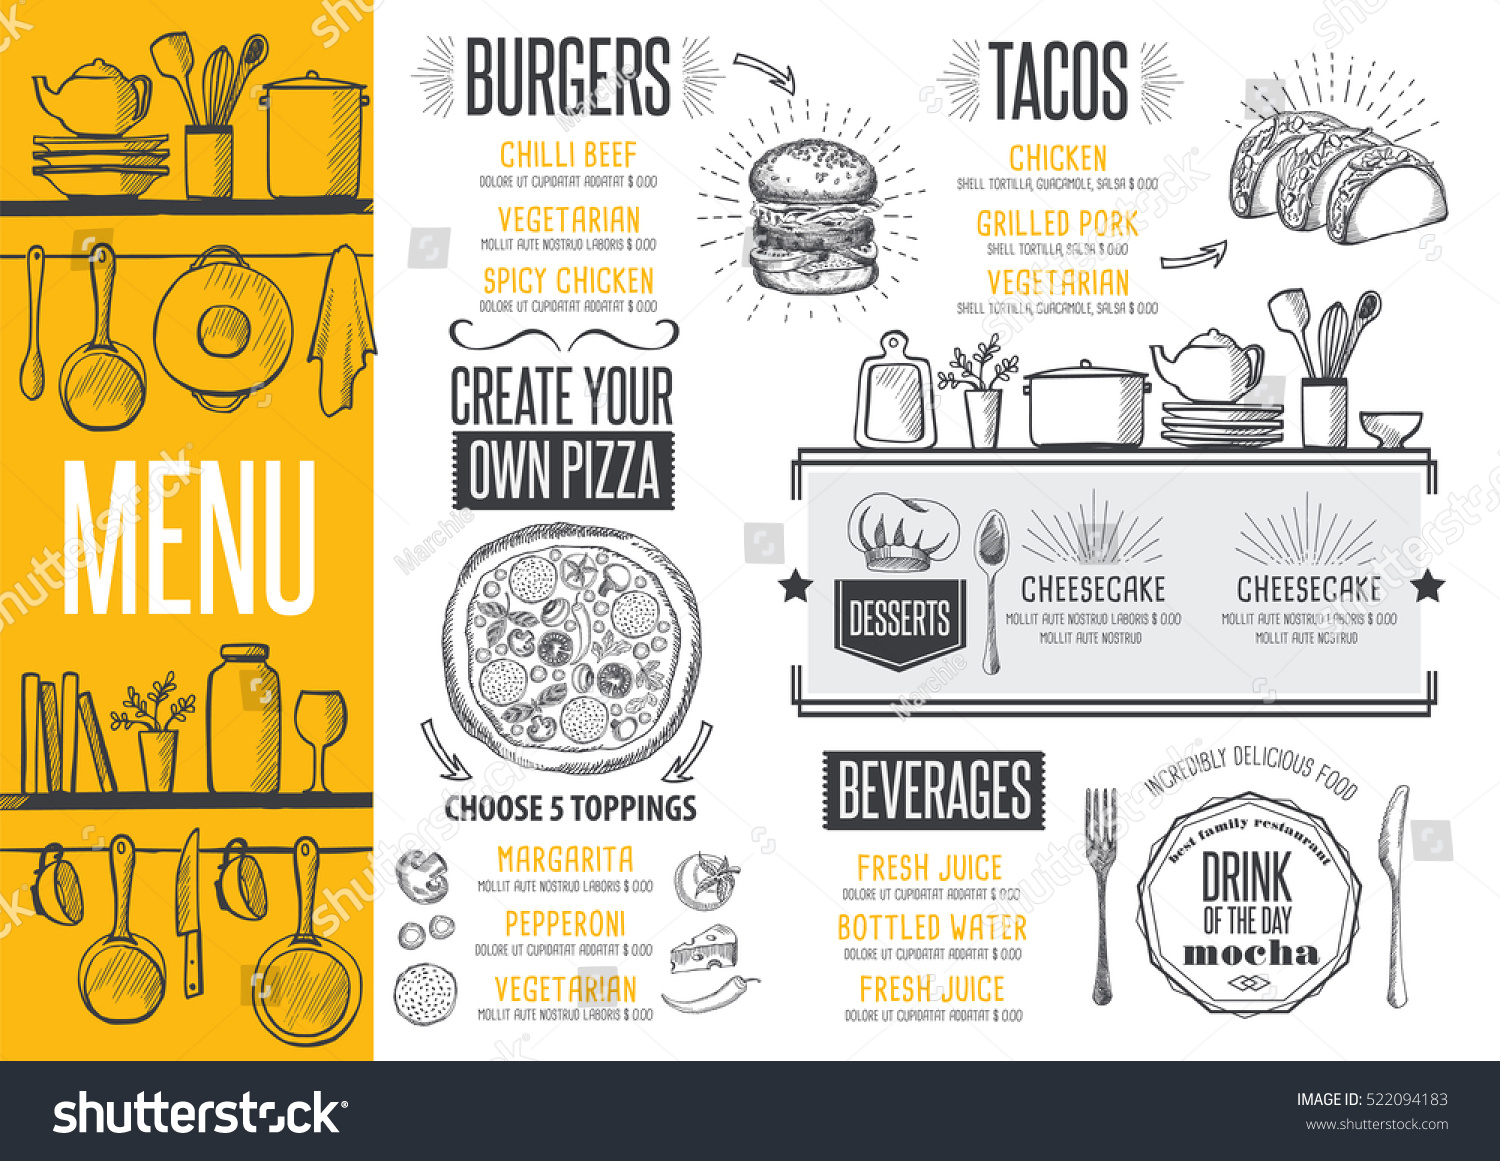 Cafe menu food placemat brochure restaurant stock vector